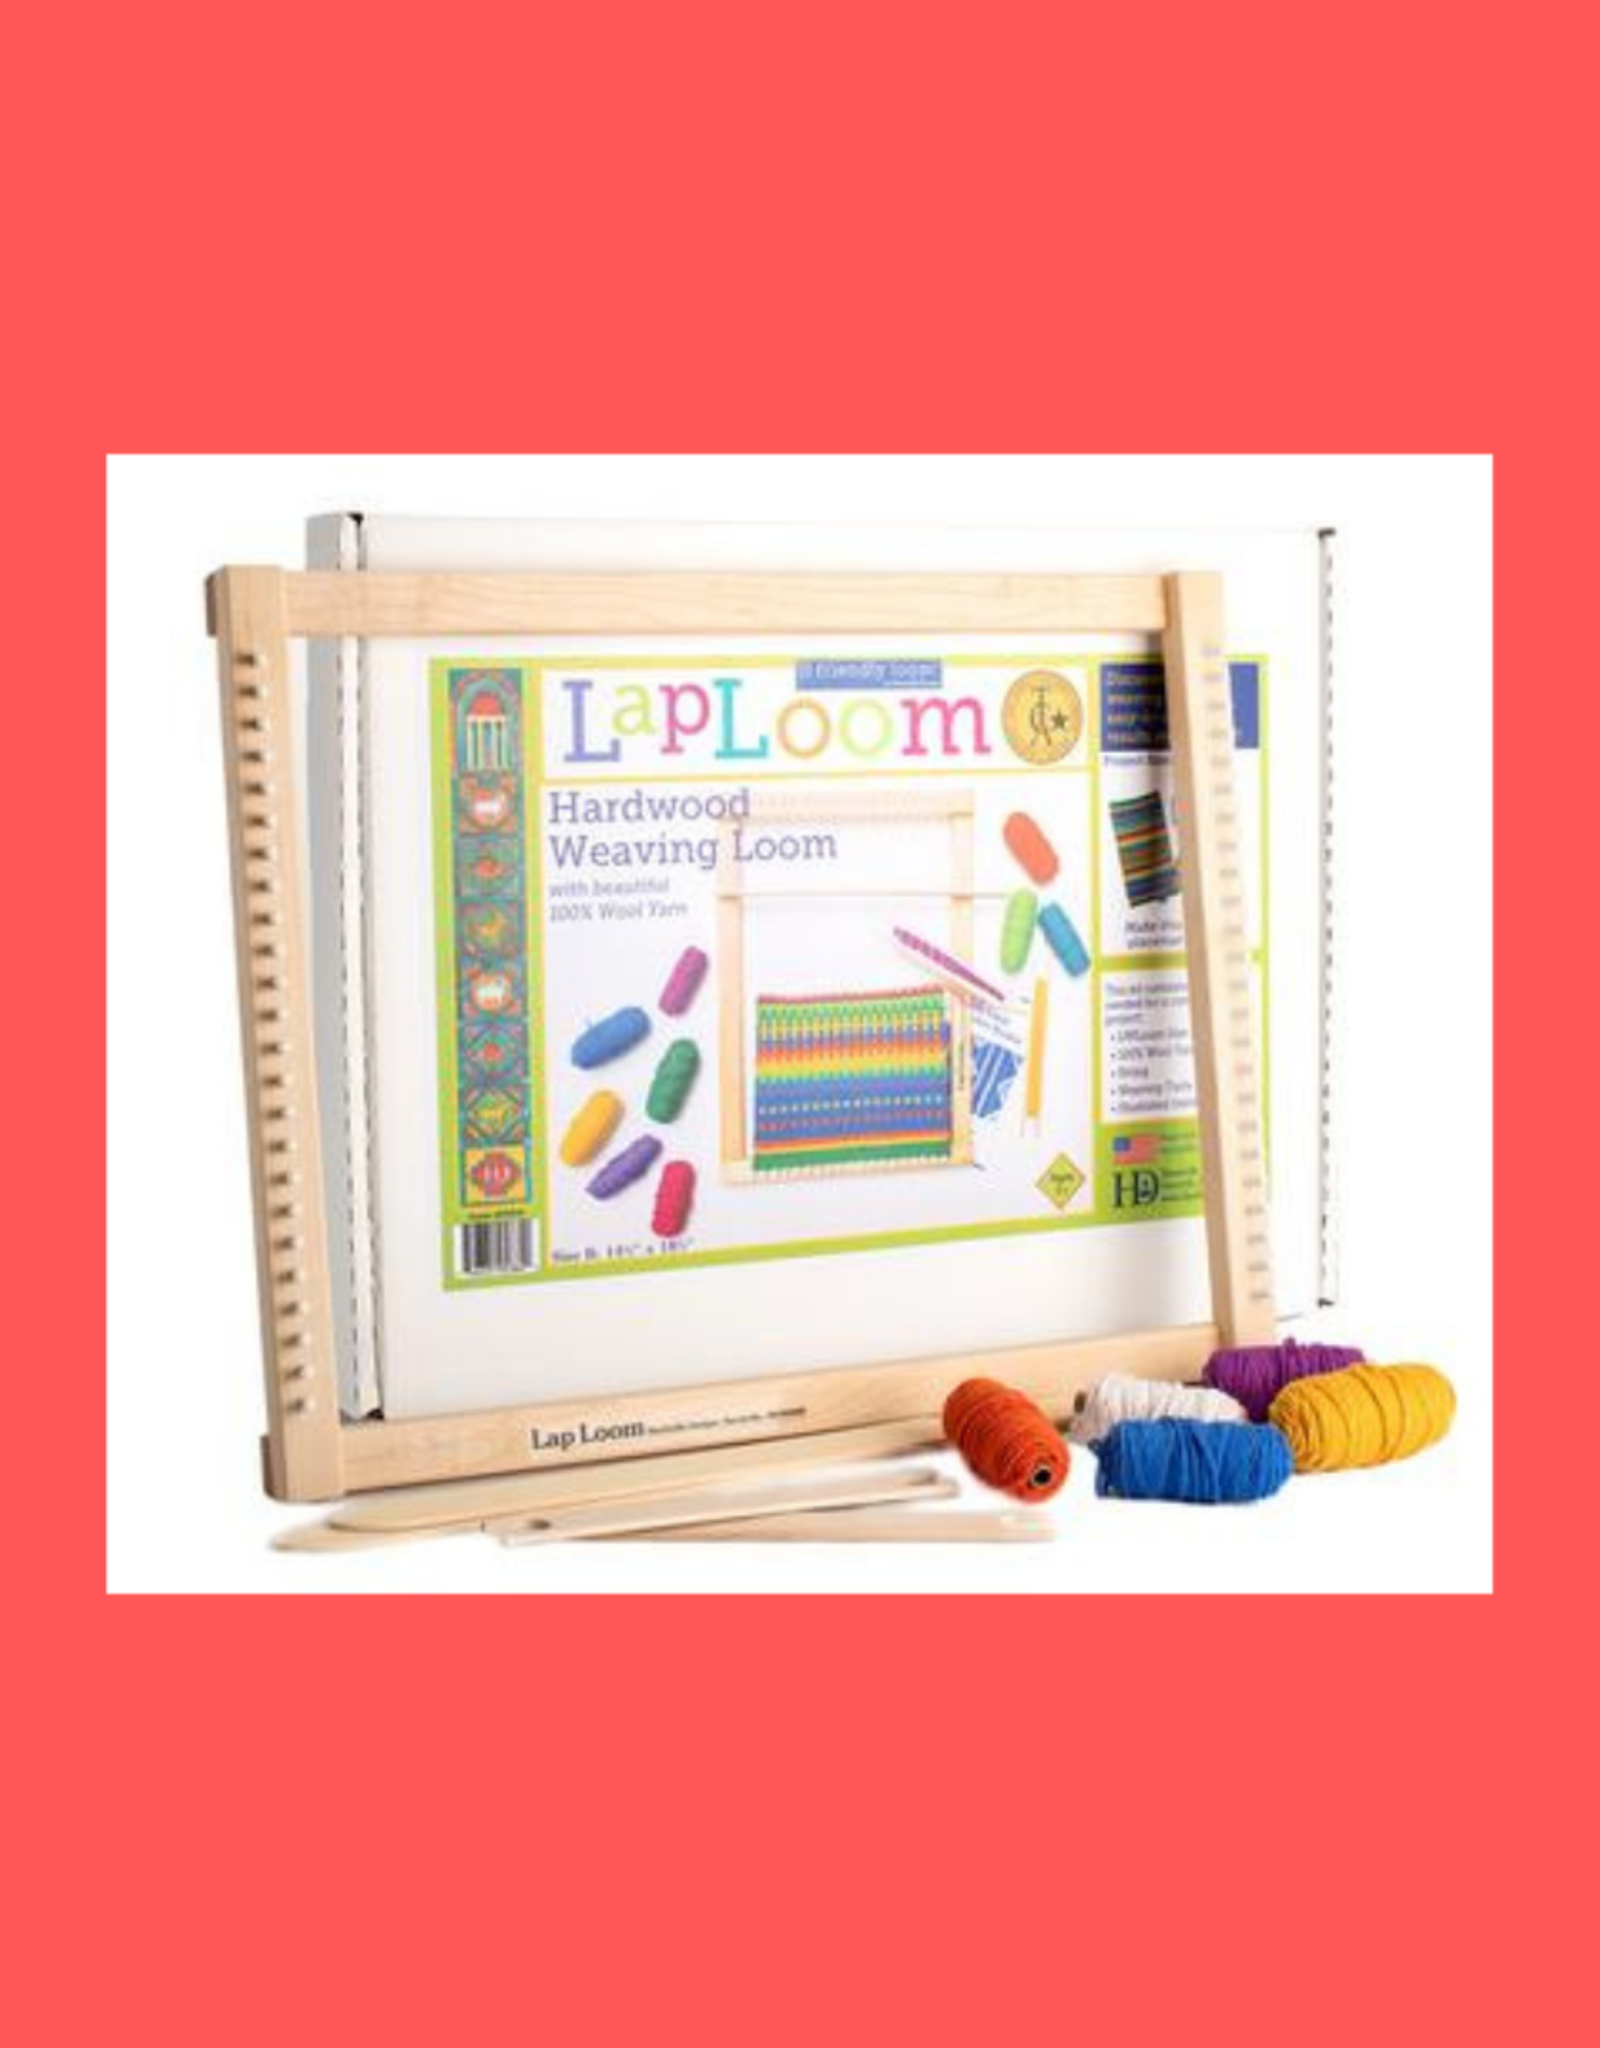 HARRISVILLE LAPLOOM LAP LOOM KIT B